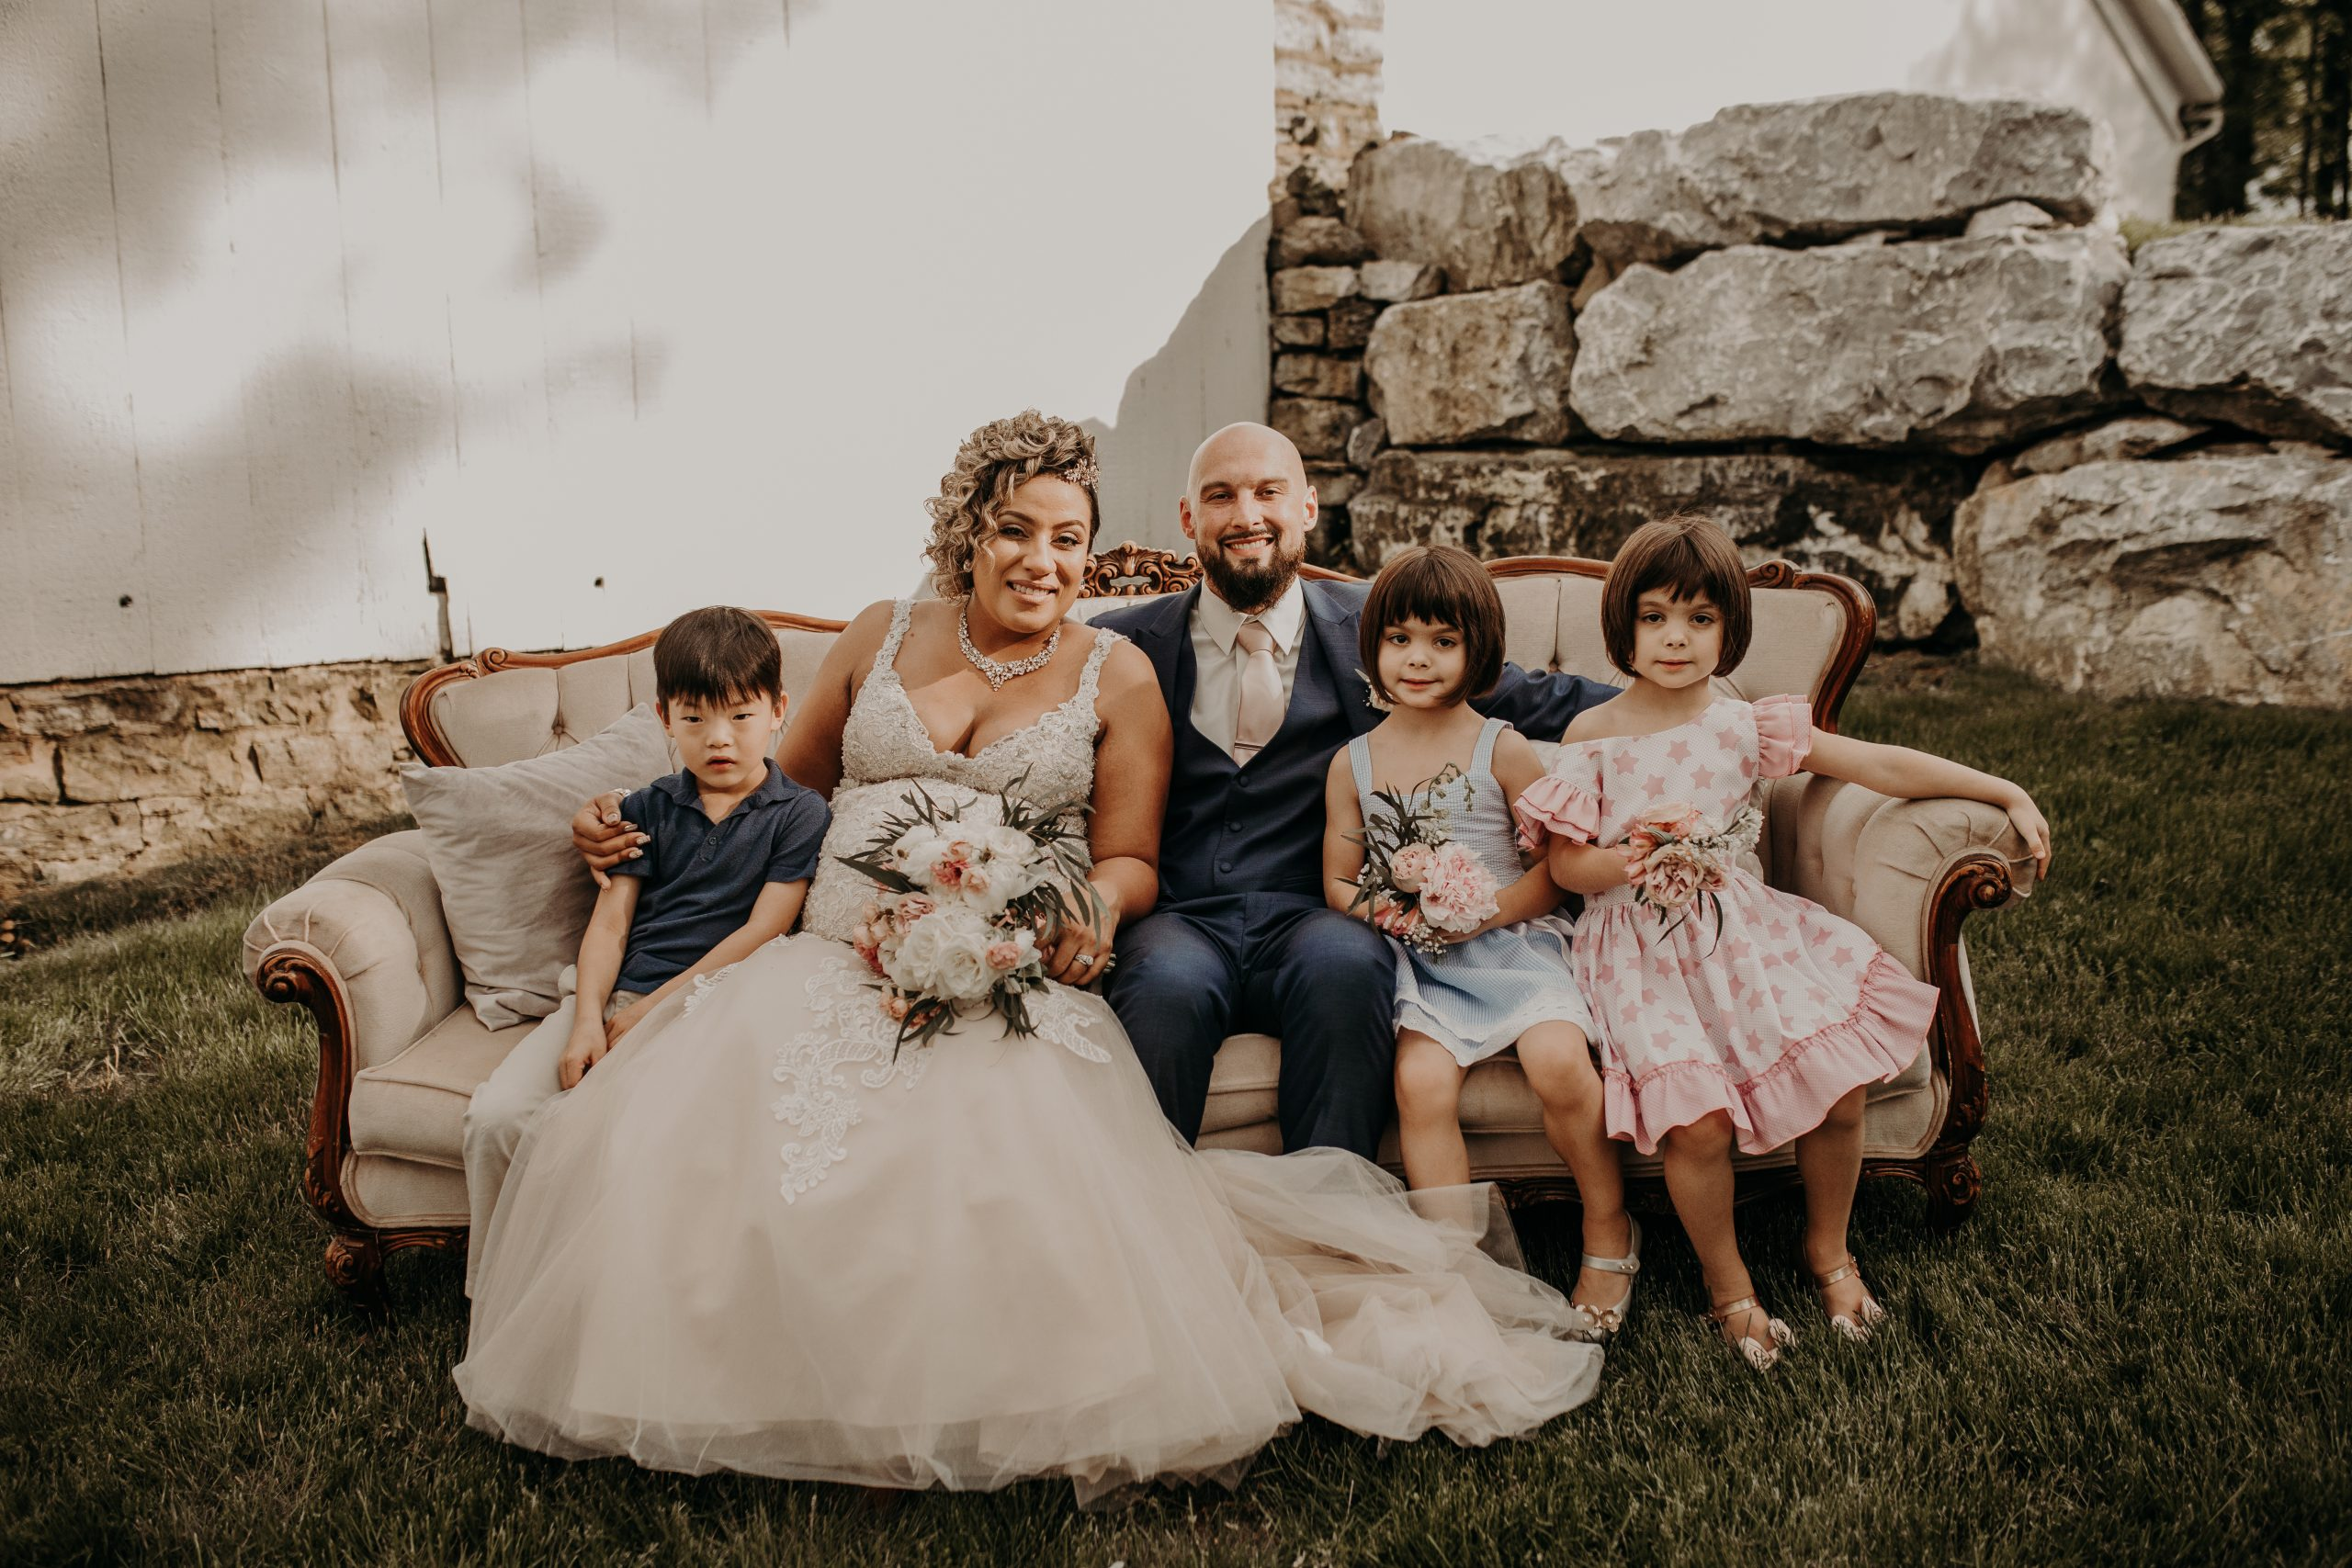 Nieces and nephews sit around their aunt and uncle who just tied the knot! Christine and Richard wed on the Chestnut Hill Villa grounds on May of 2019. This organic ethereal styled wedding was captured by Garnet Dahlia Photography and featured on Dream Weddings.